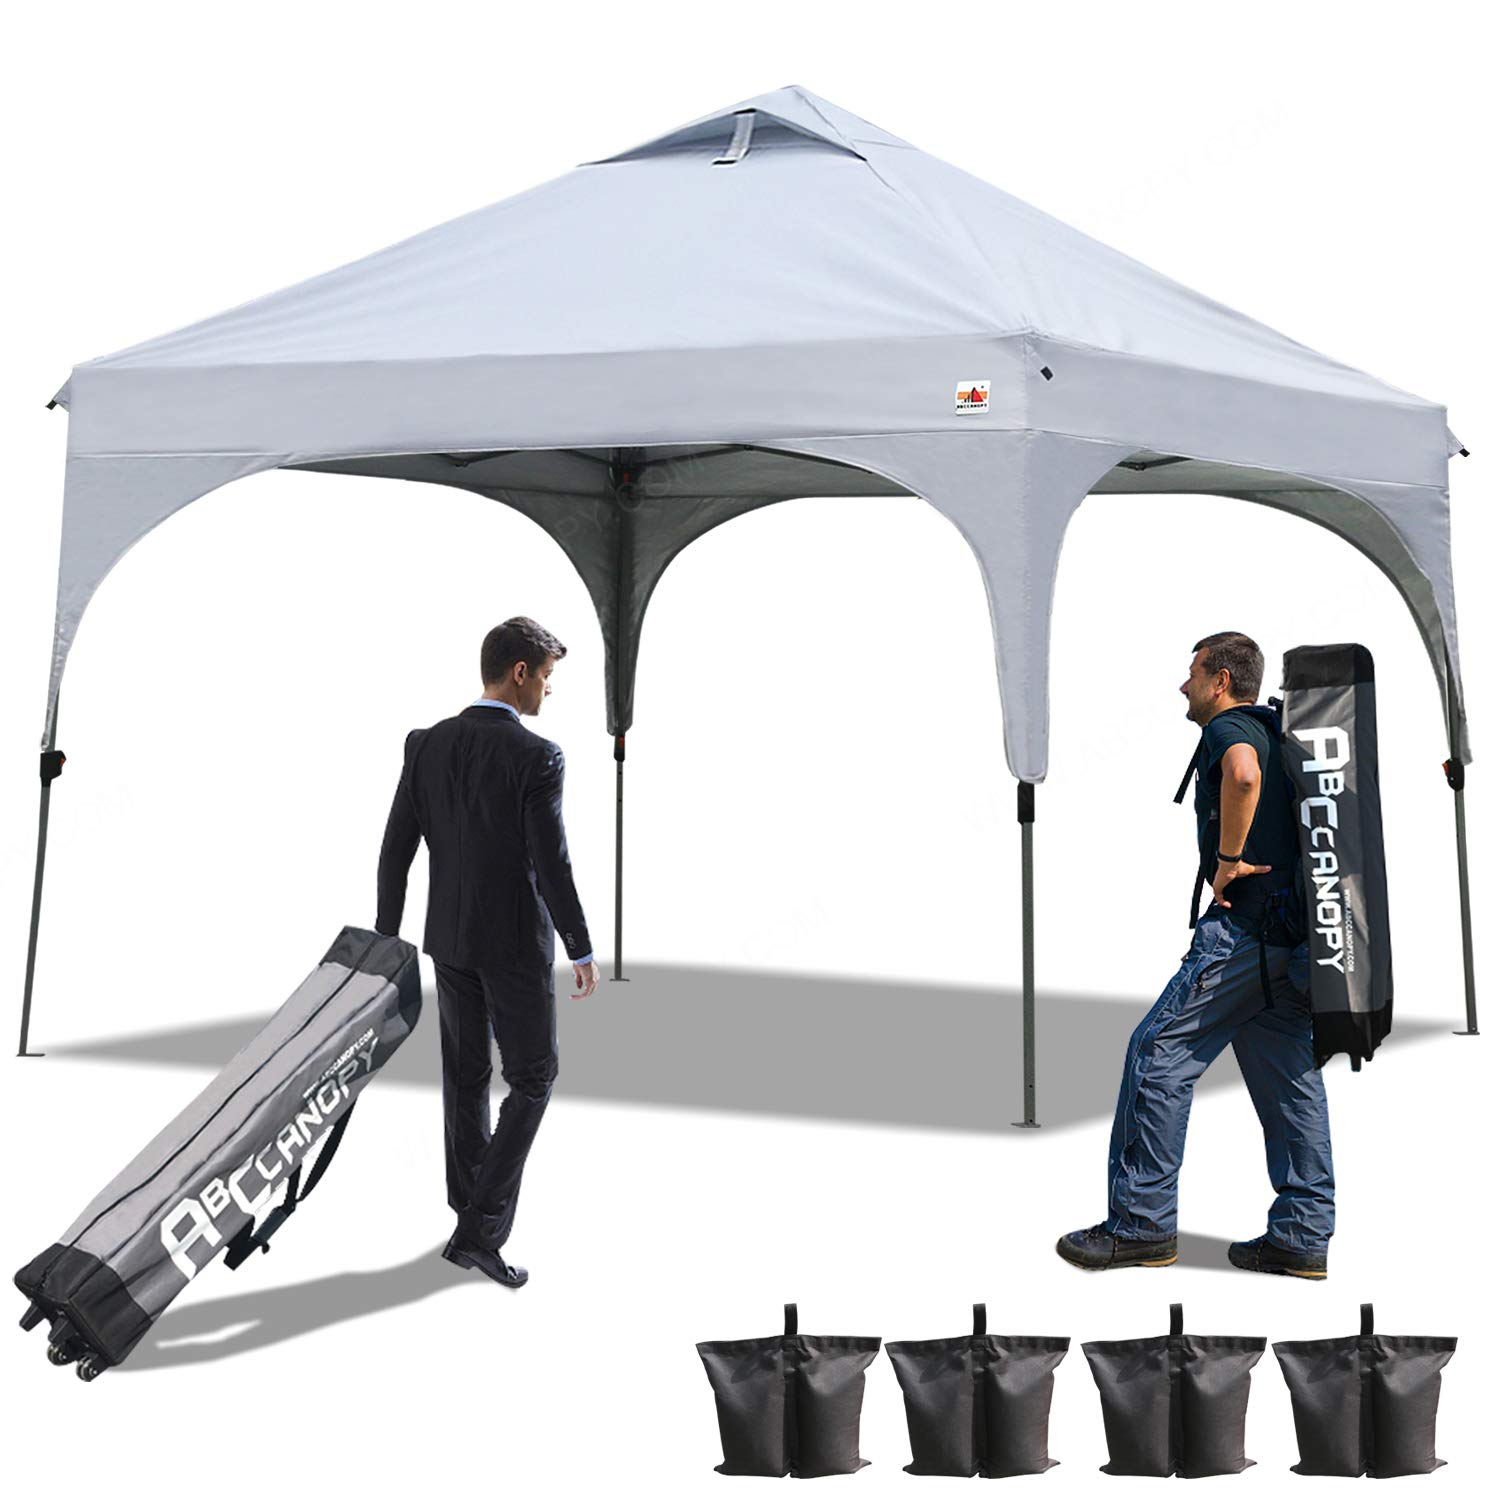 ABCCANOPY Pop Up Canopy Beach Canopy 10'x10'Better Air Circulation Canopy with Wheeled Backpack Carry Bag+4 x Sandbags, 4 x Ropes& 4 x Stakes(Forest Green with Frame Gray)